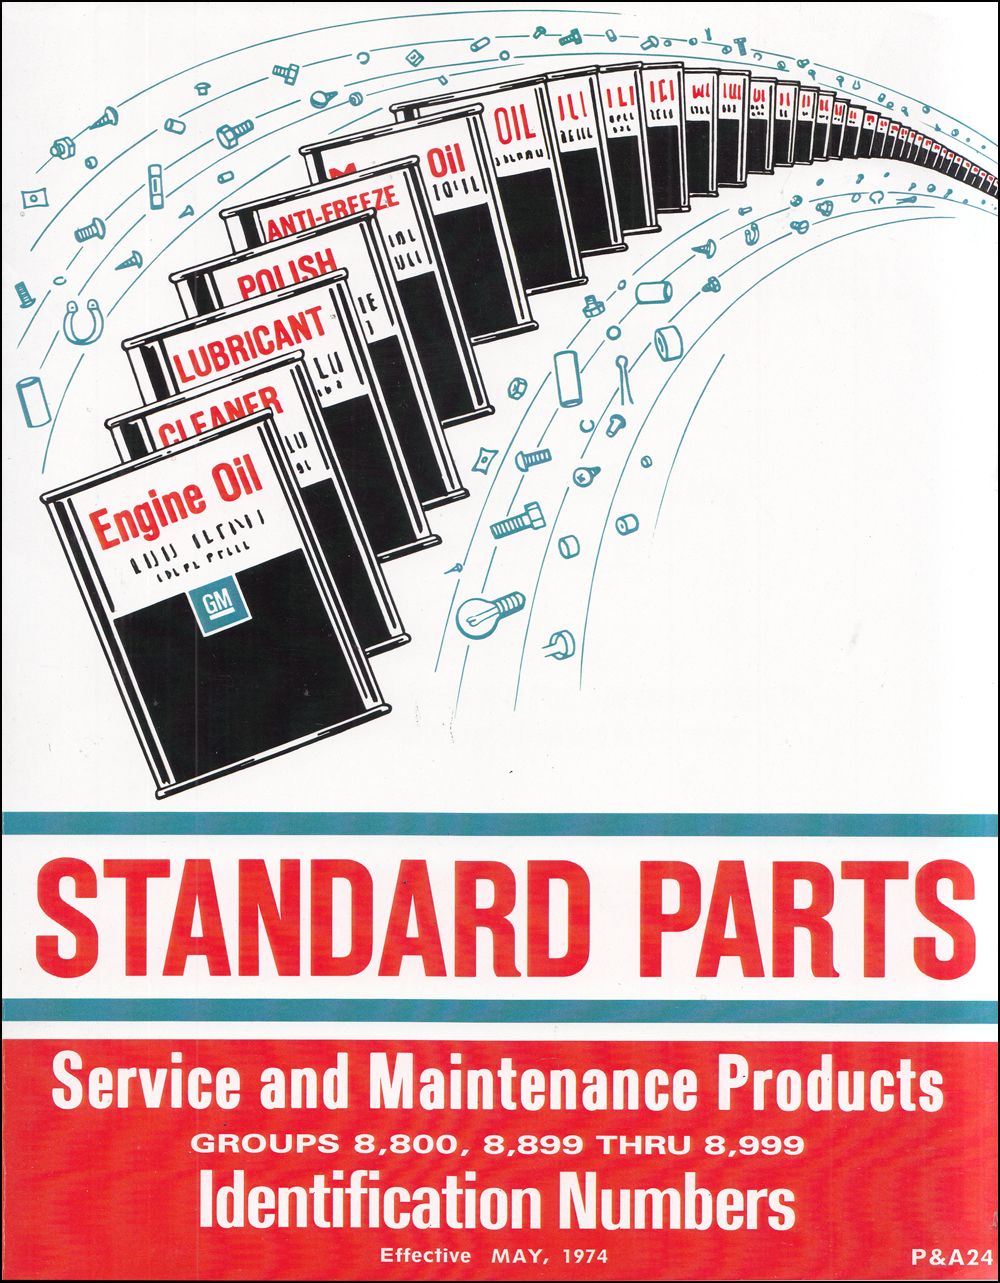 1969-1974 Chevrolet Standard Parts Catalog Reprint